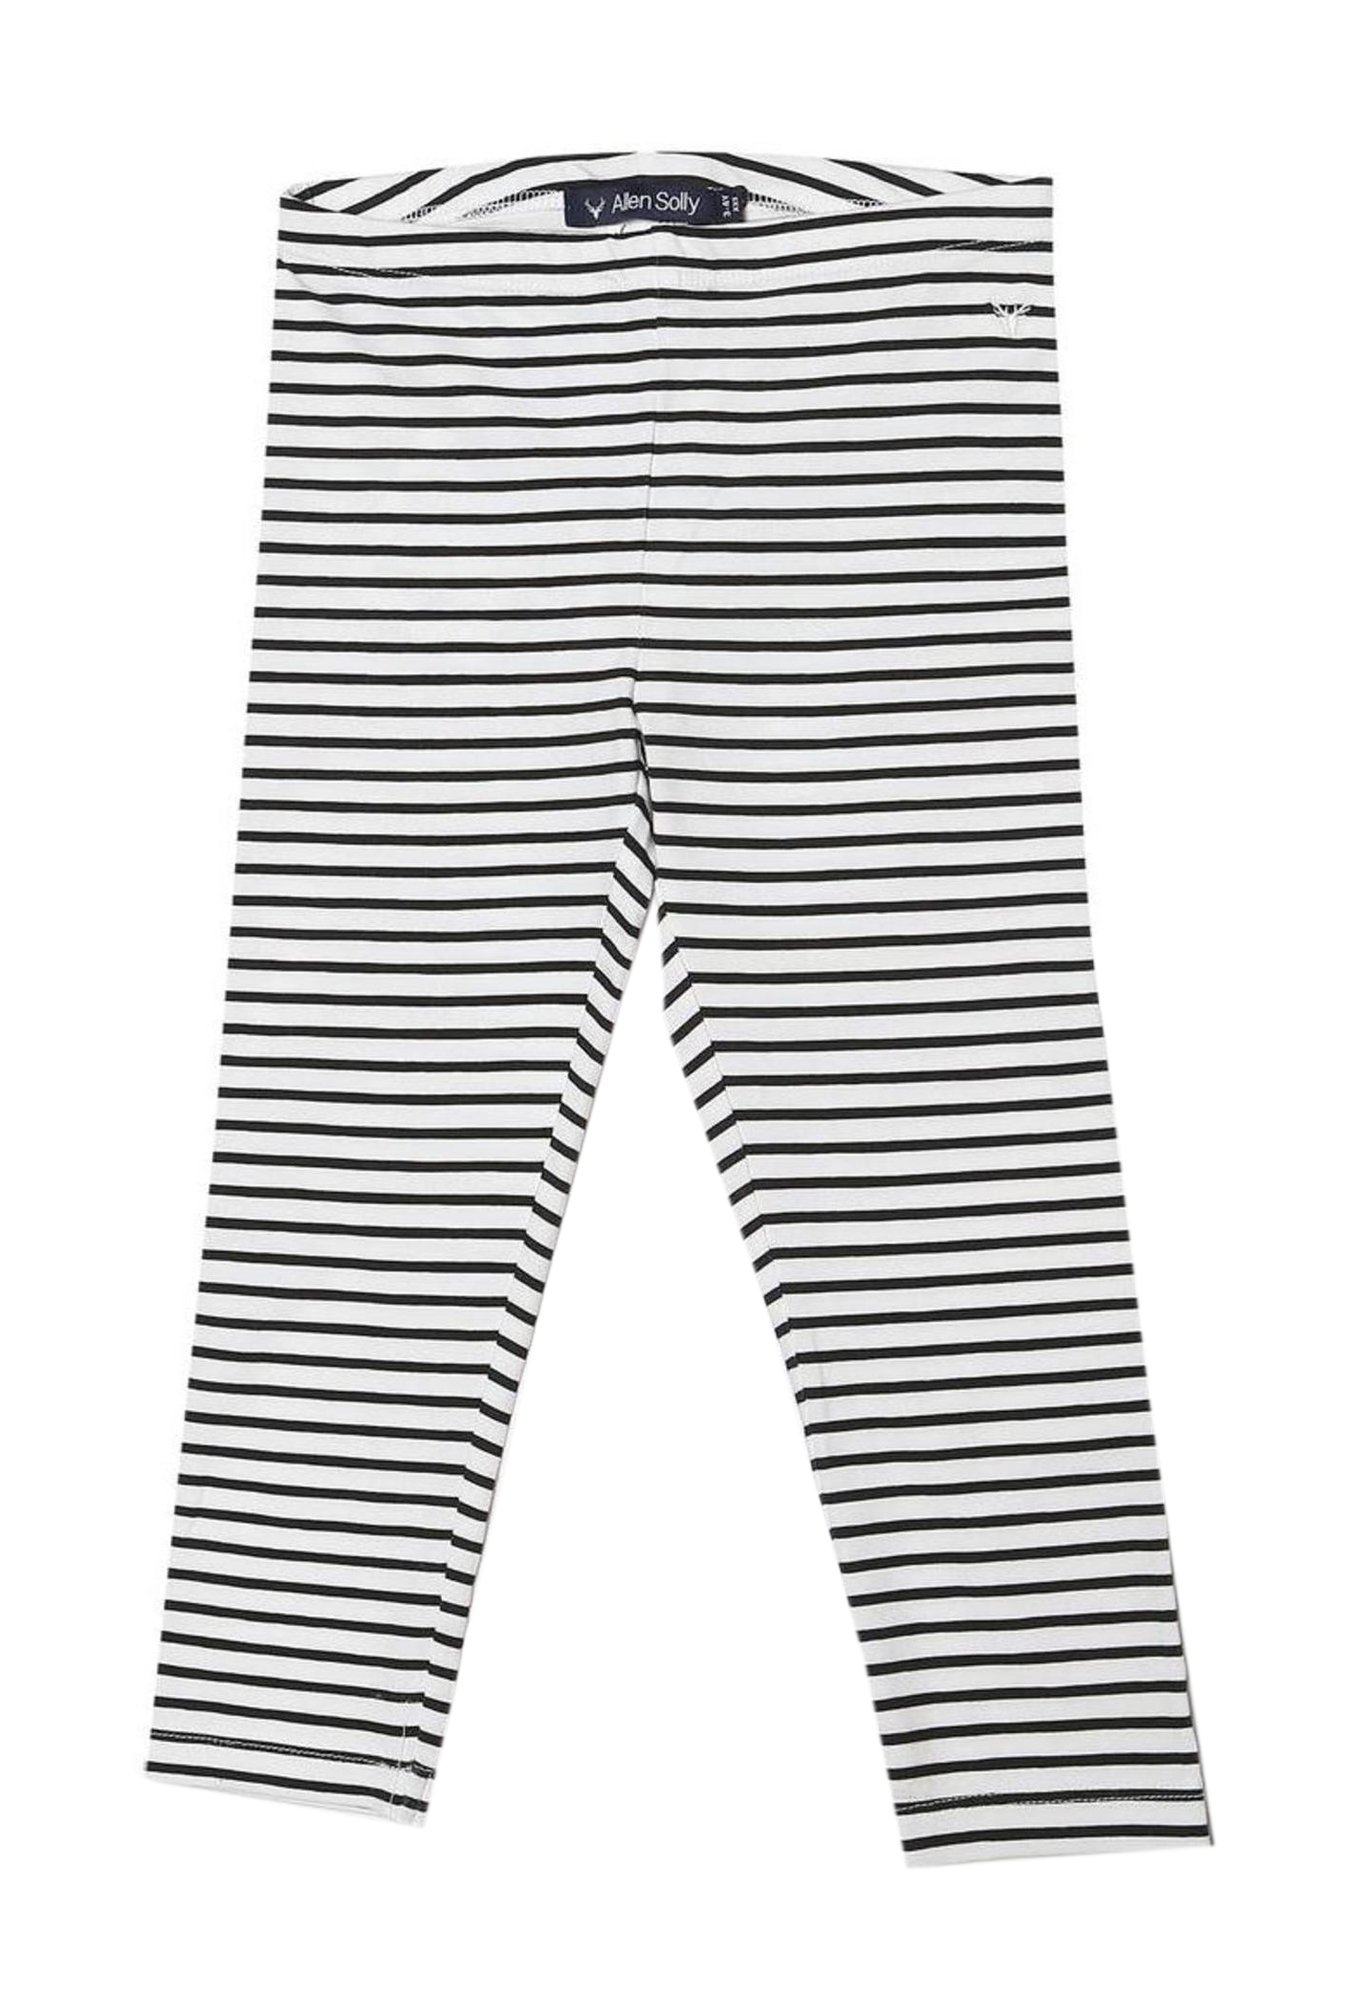 59a322e3627aa Buy Allen Solly Junior White & Black Striped Leggings for Girls Clothing  Online @ Tata CLiQ